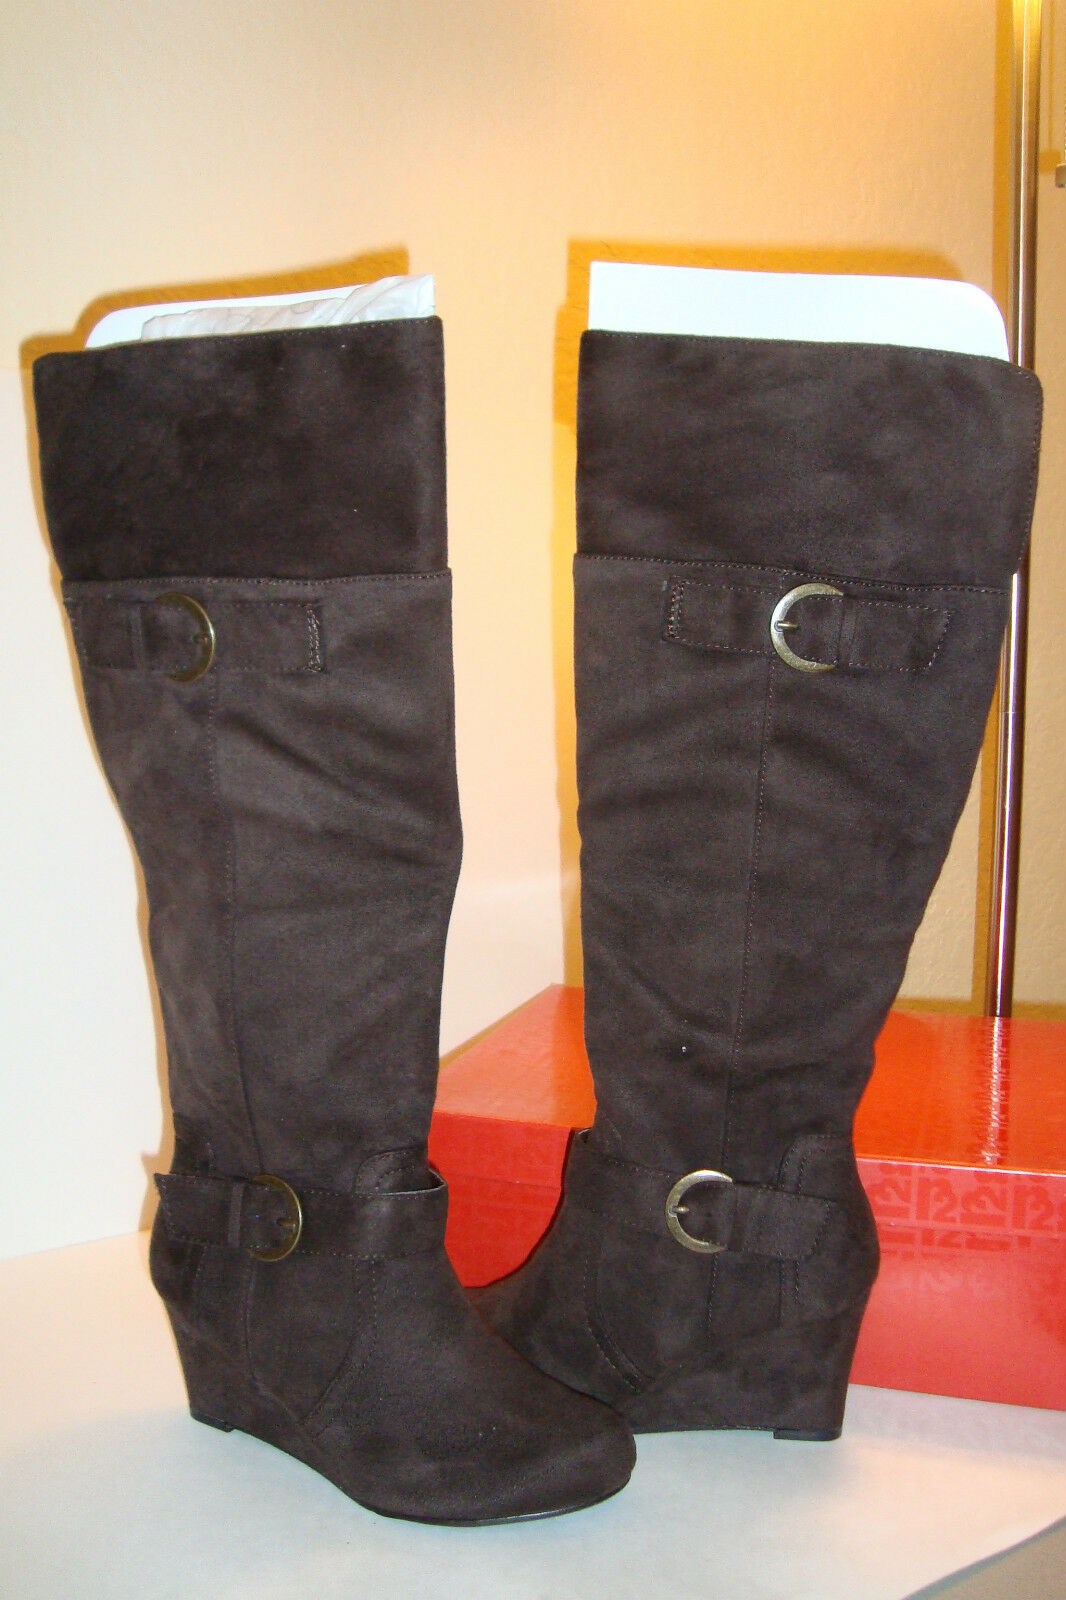 R2 Footwear femmes Mackenzie marron bottes chaussures 8 MED PREOWNED